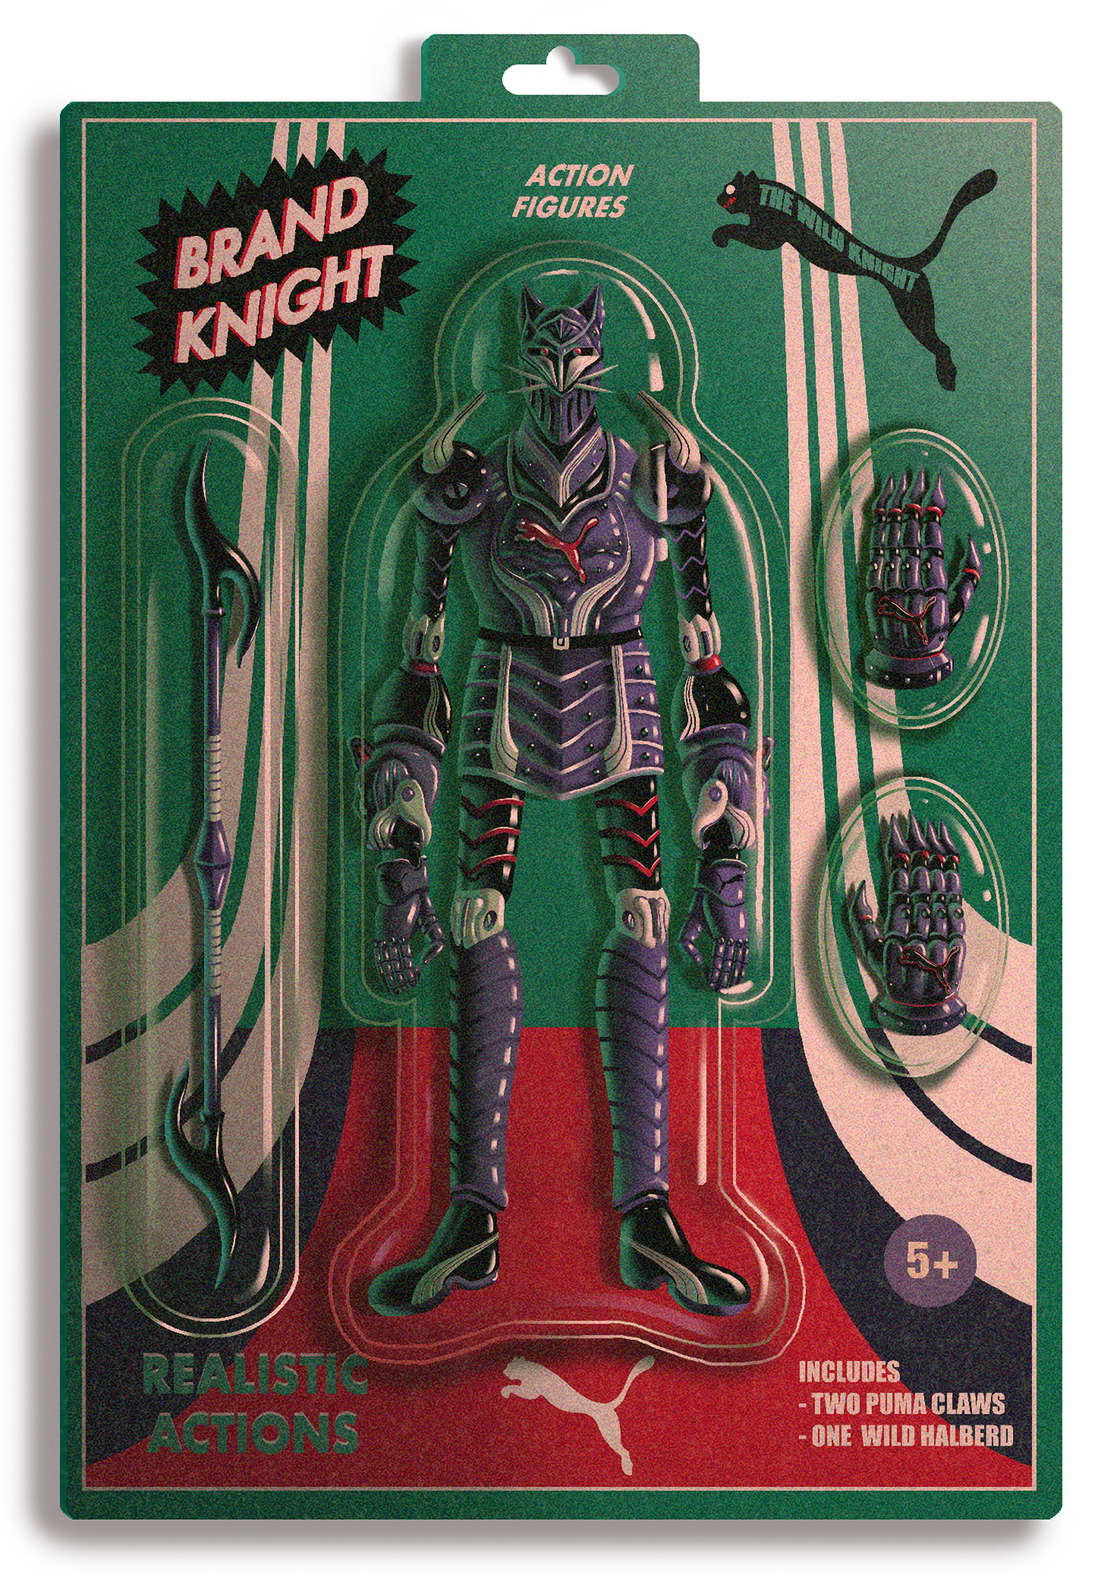 Brand Knight - When famous brands are turned into toys